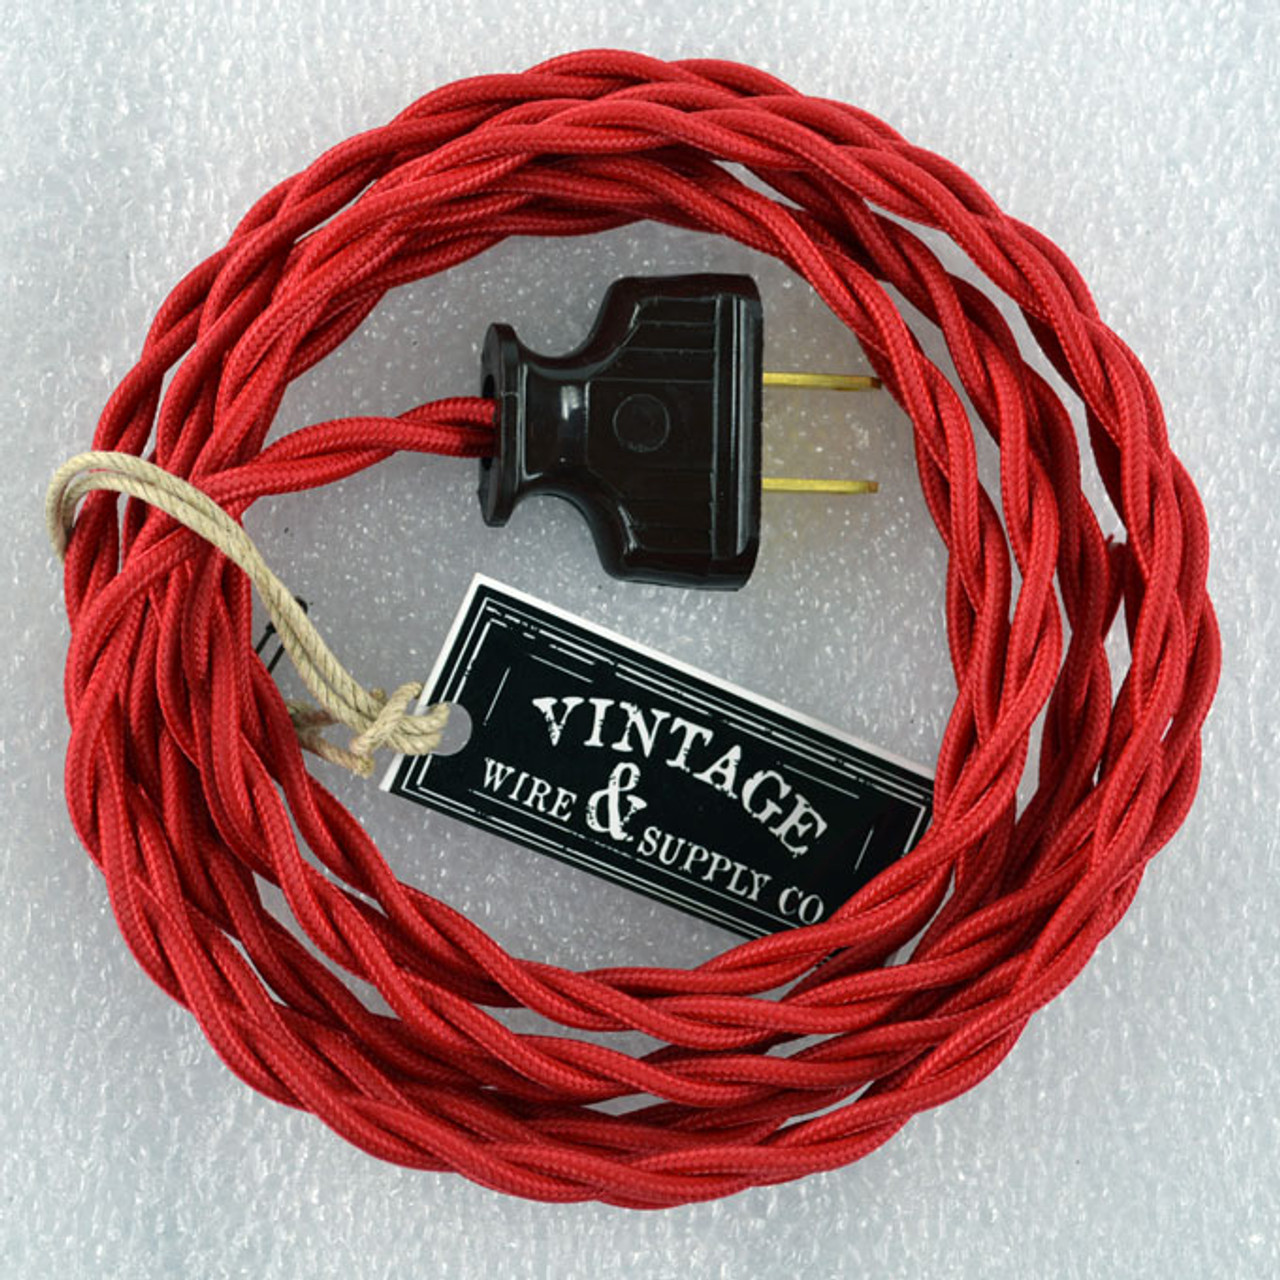 Admirable Cloth Covered Wire From Vintage Wire And Supply With Antique Style Plug Wiring Cloud Cosmuggs Outletorg